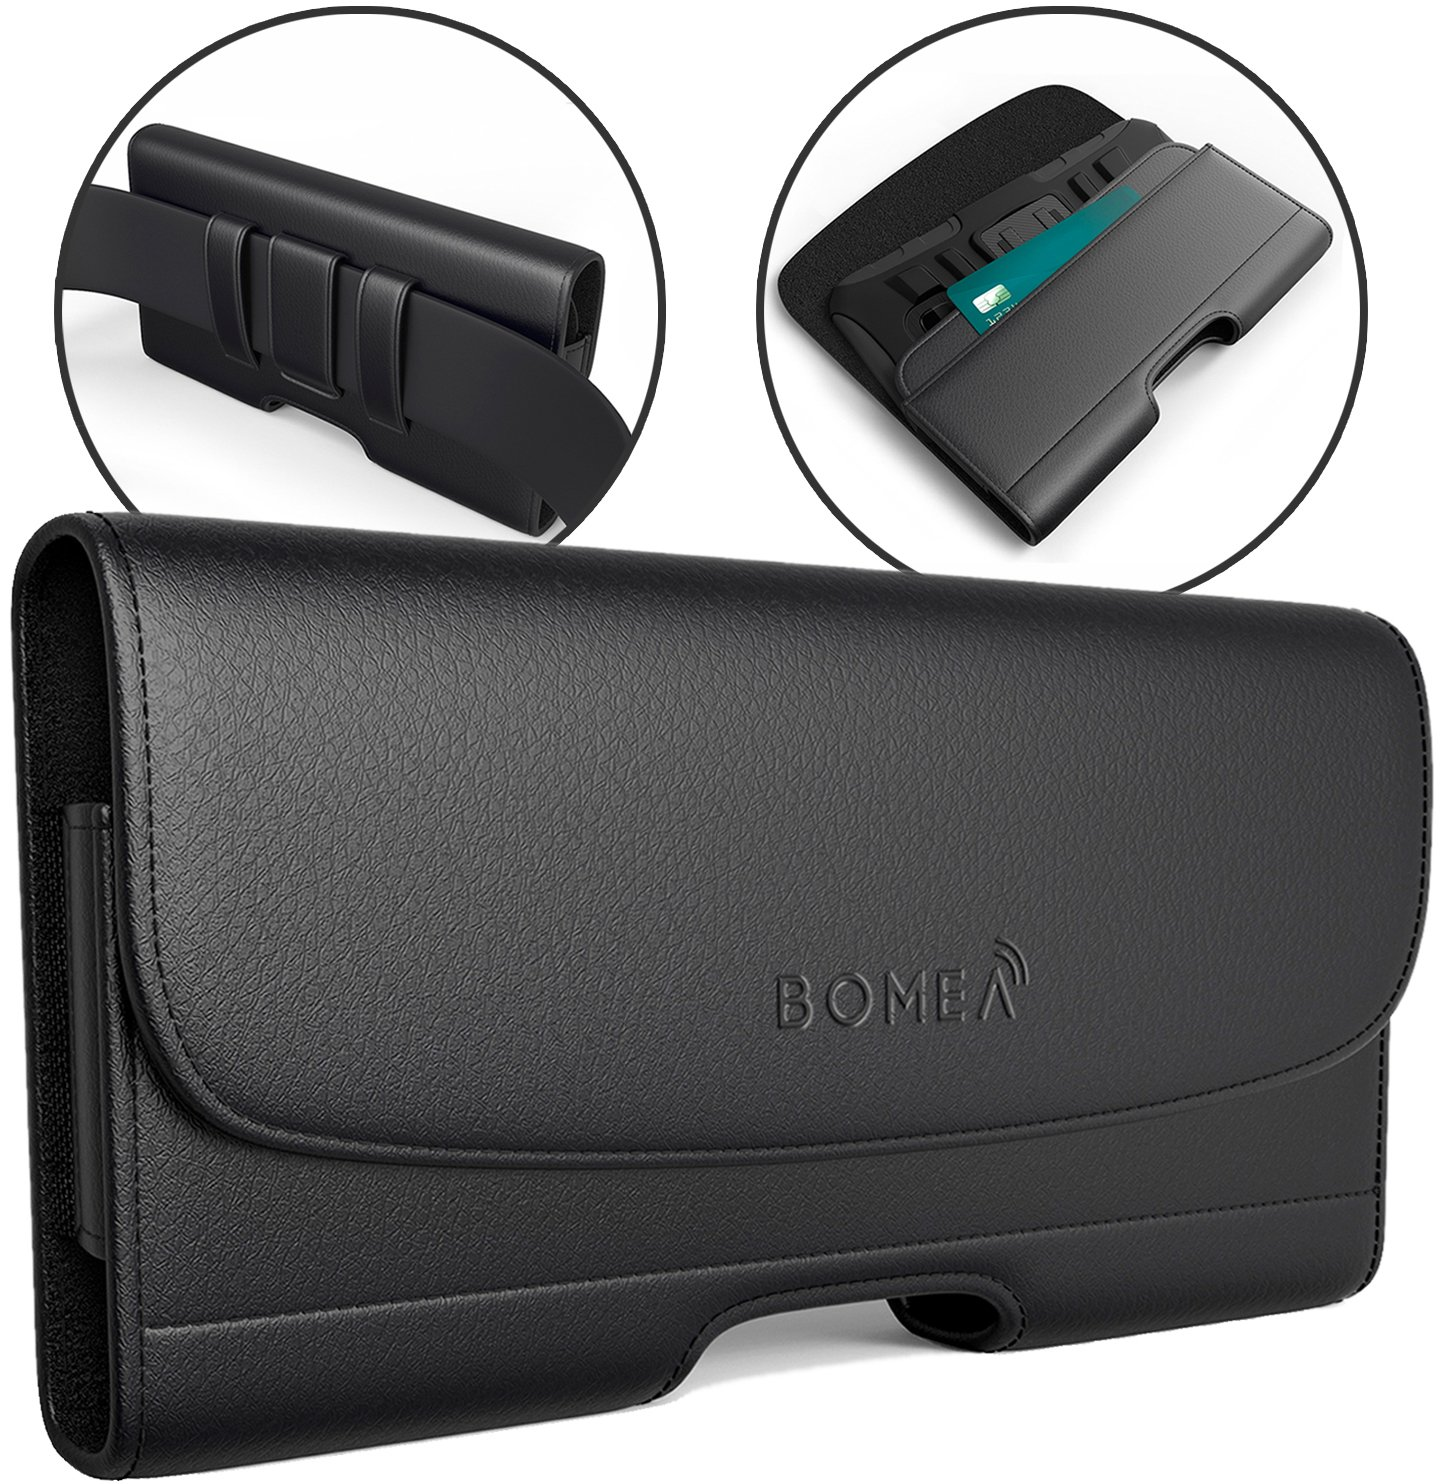 outlet store 14ea6 bc93b Bomea Premium iPhone X Case, Leather Holster Belt Case with Clip Loops Belt  Pouch Sleeve Holder Cover for Apple iPhone X Phone Built In Wallet ID Card  ...